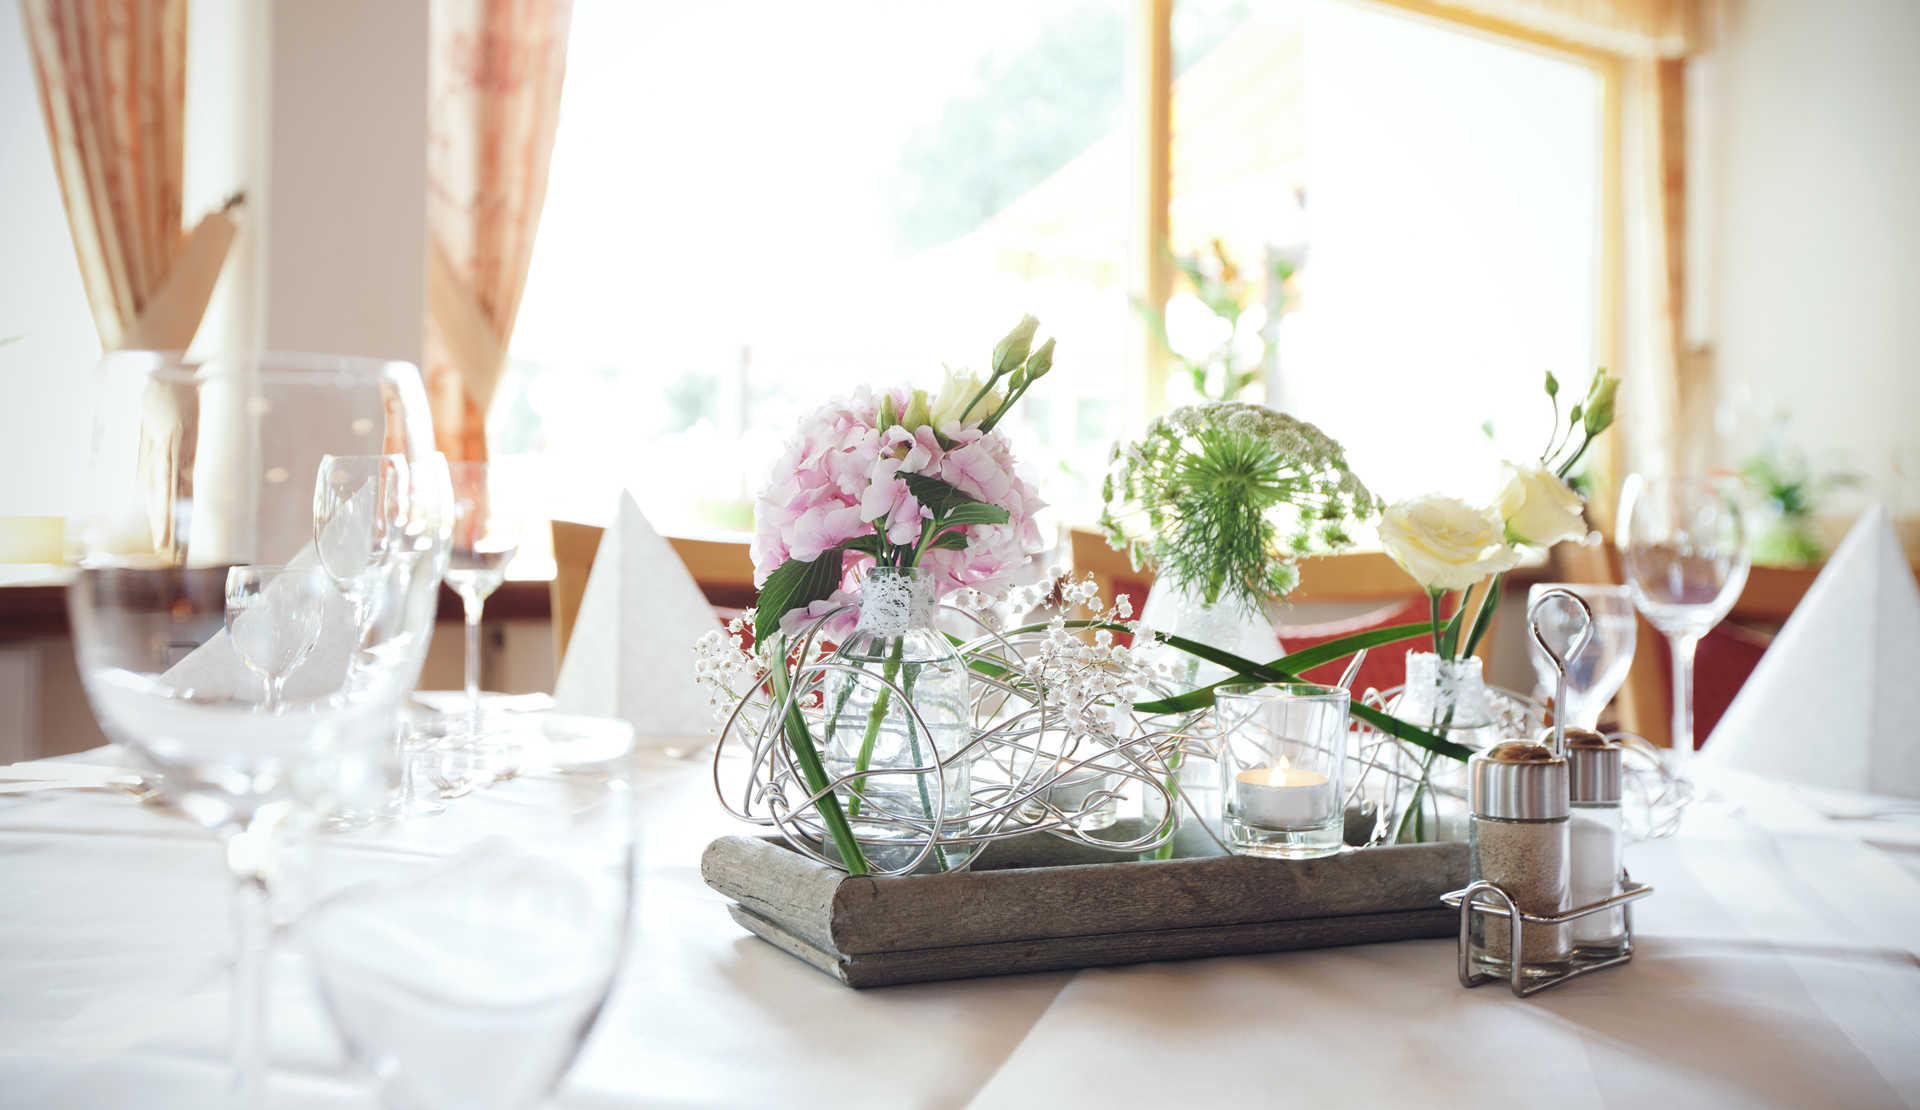 Table with wine glasses and flowers